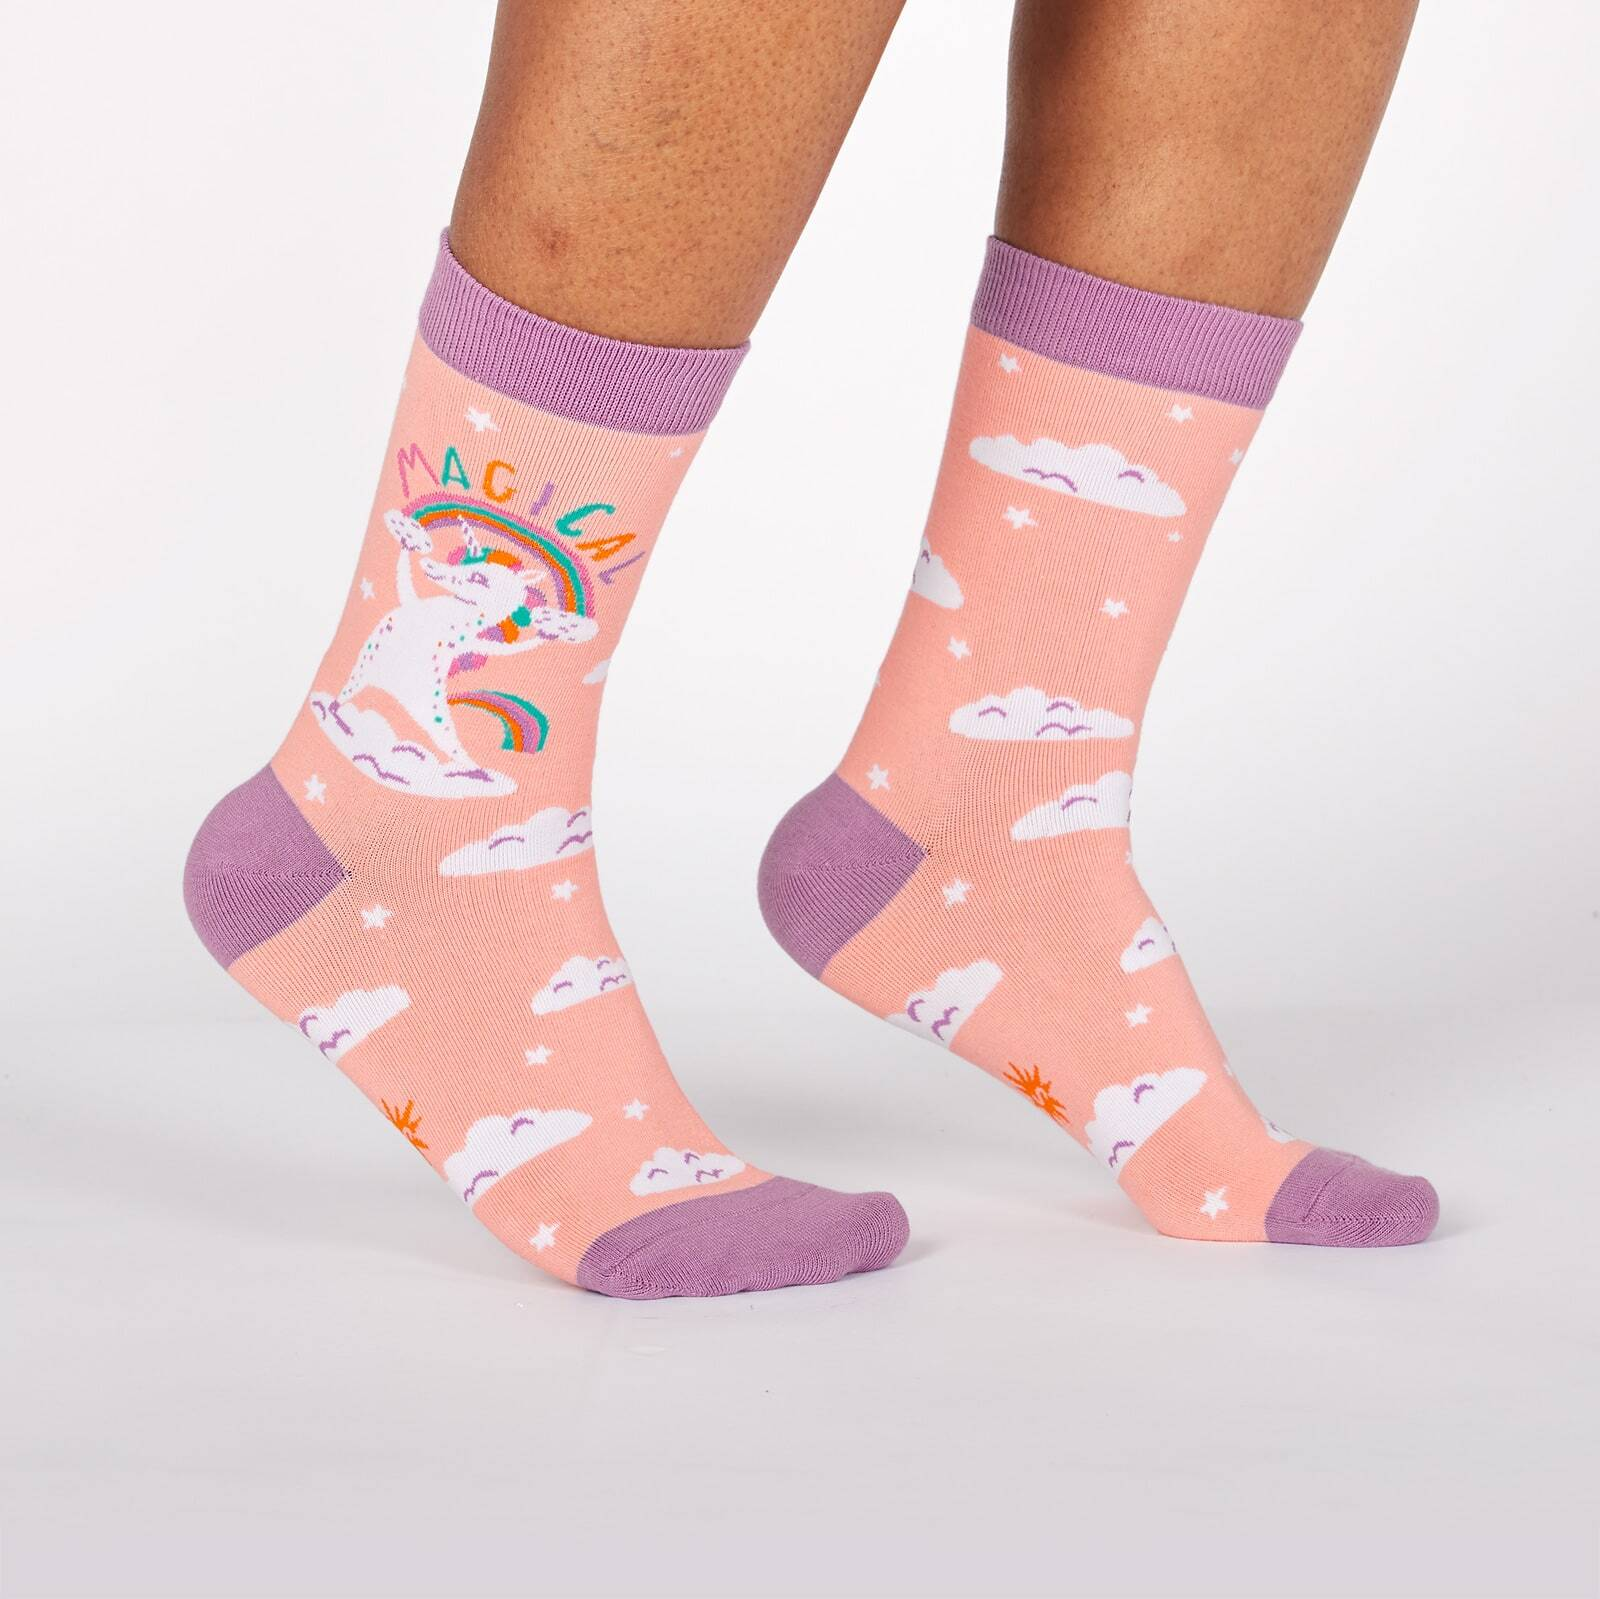 model wearing Magical - Unicorn In the Clouds Crew Socks Pink - Women's